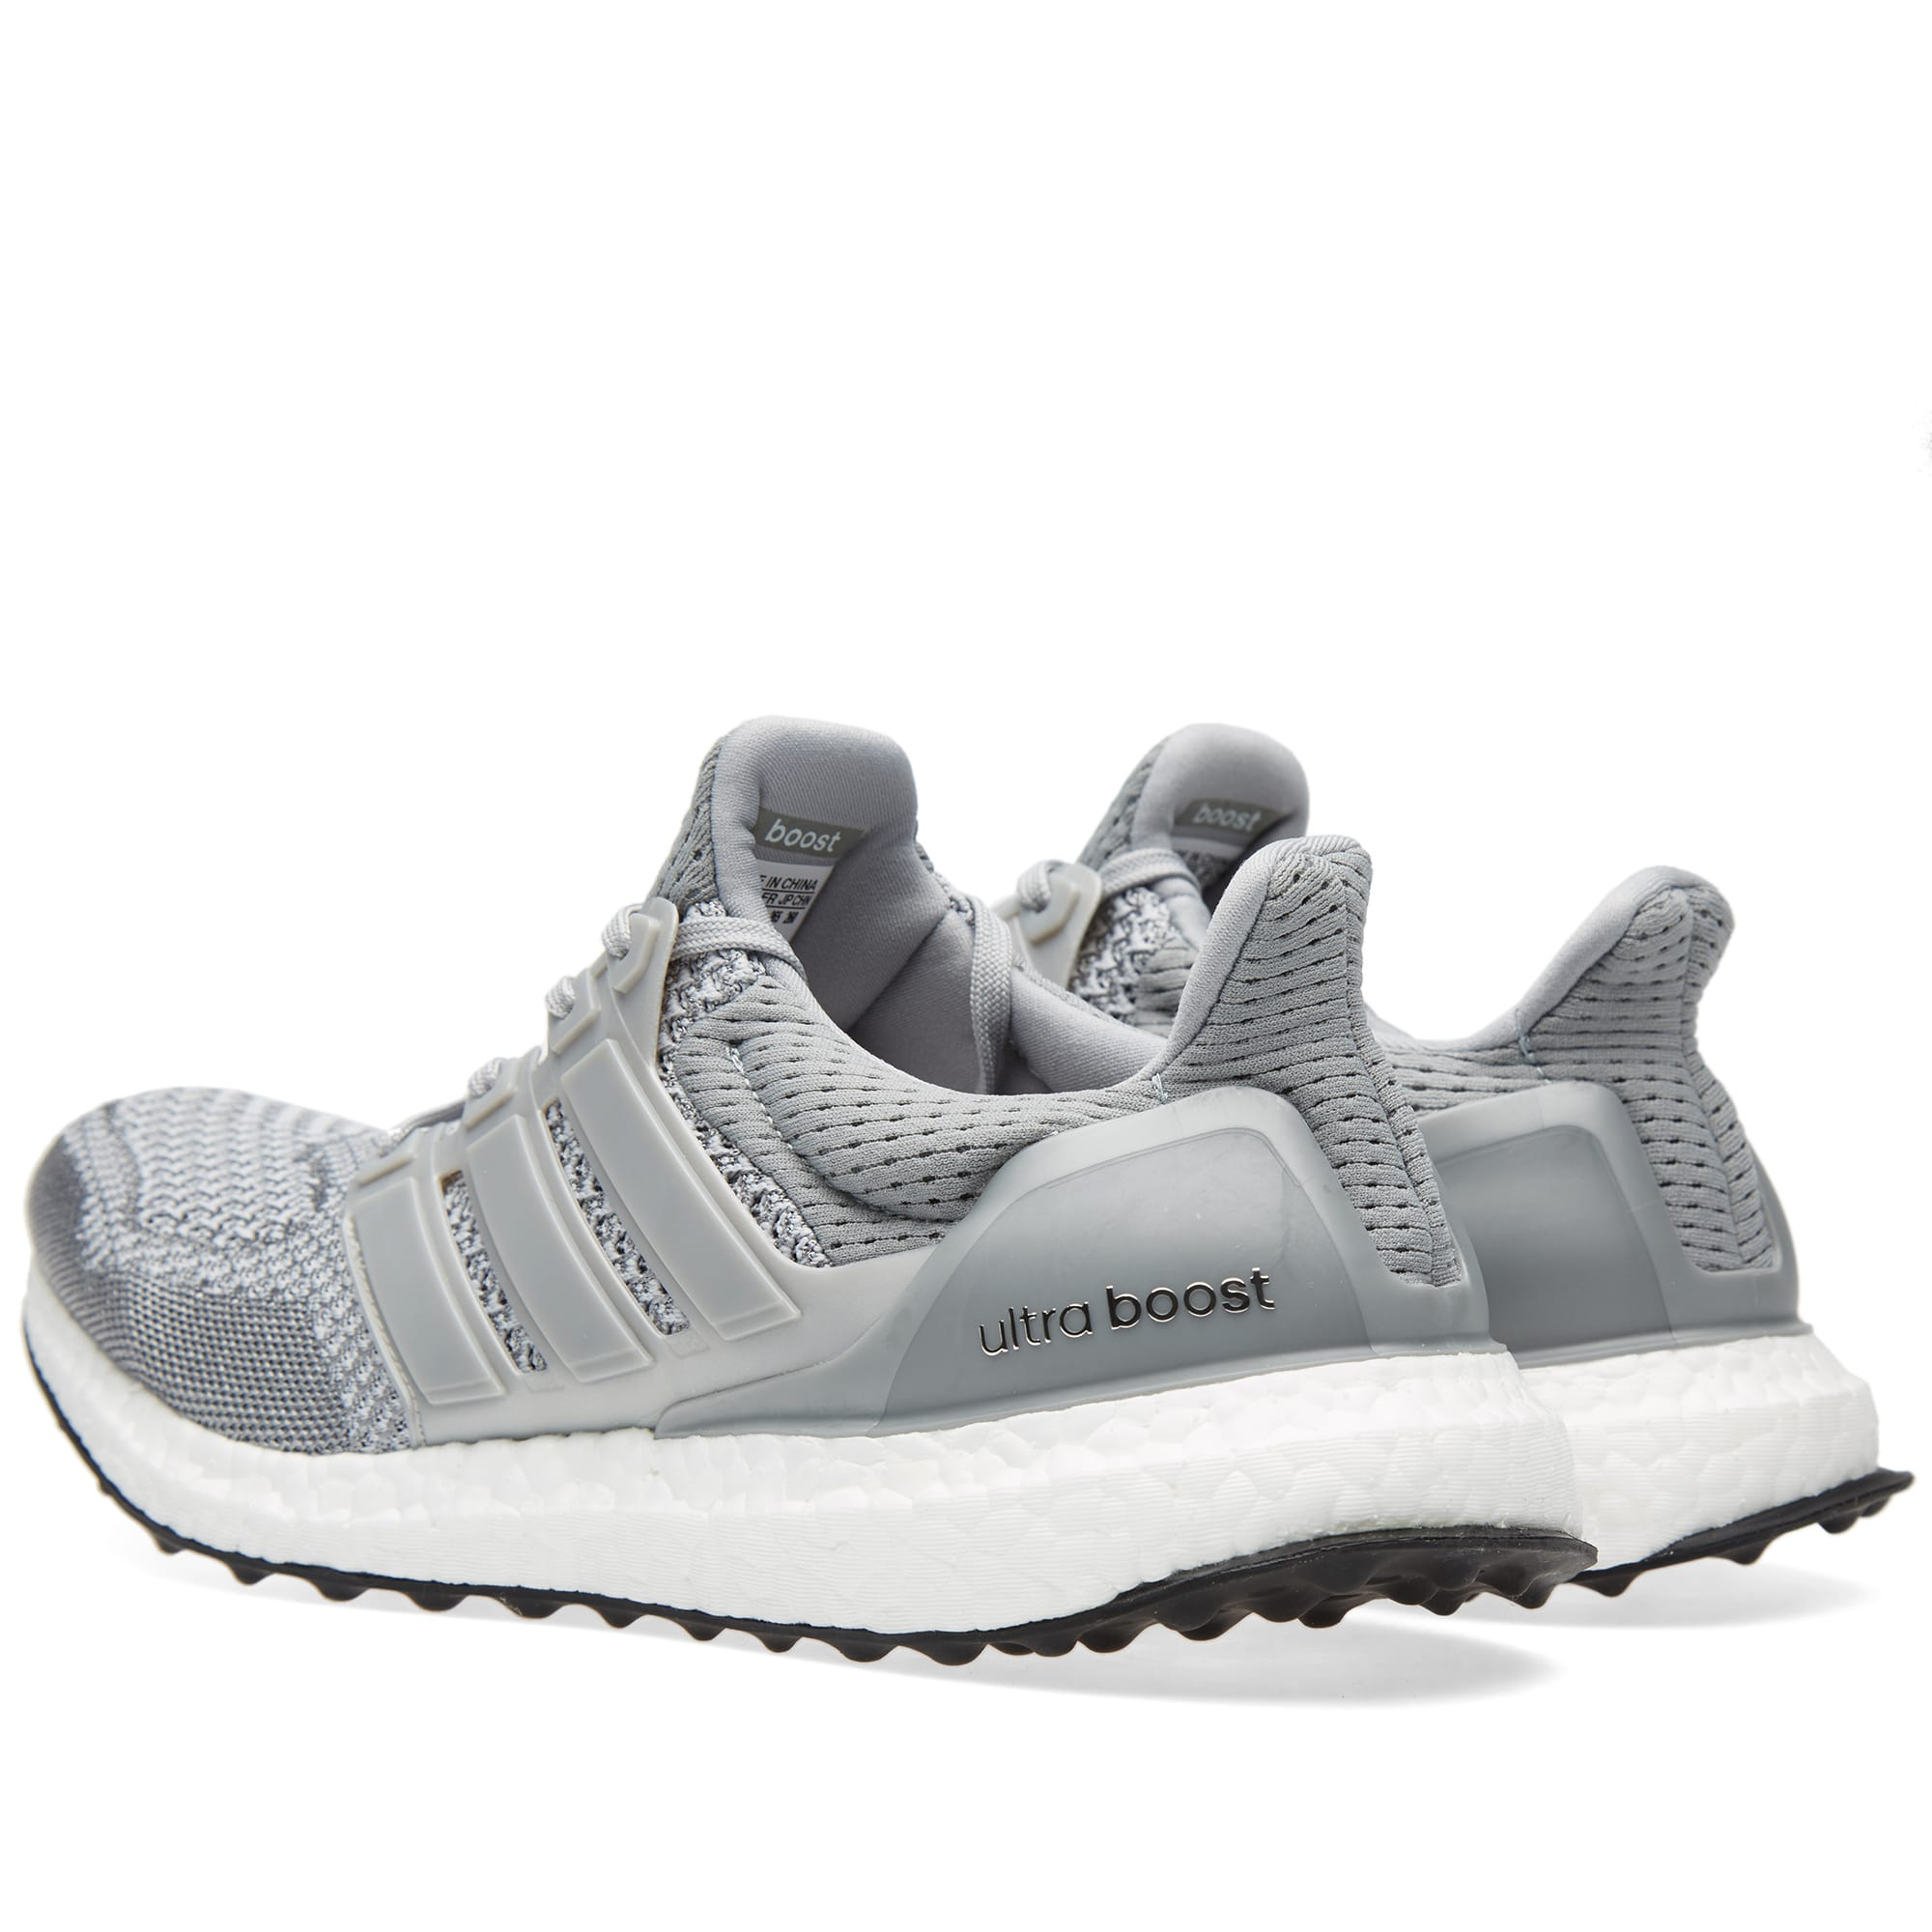 ad64bdaabf2 Adidas Ultra Boost Ltd. Silver Metallic